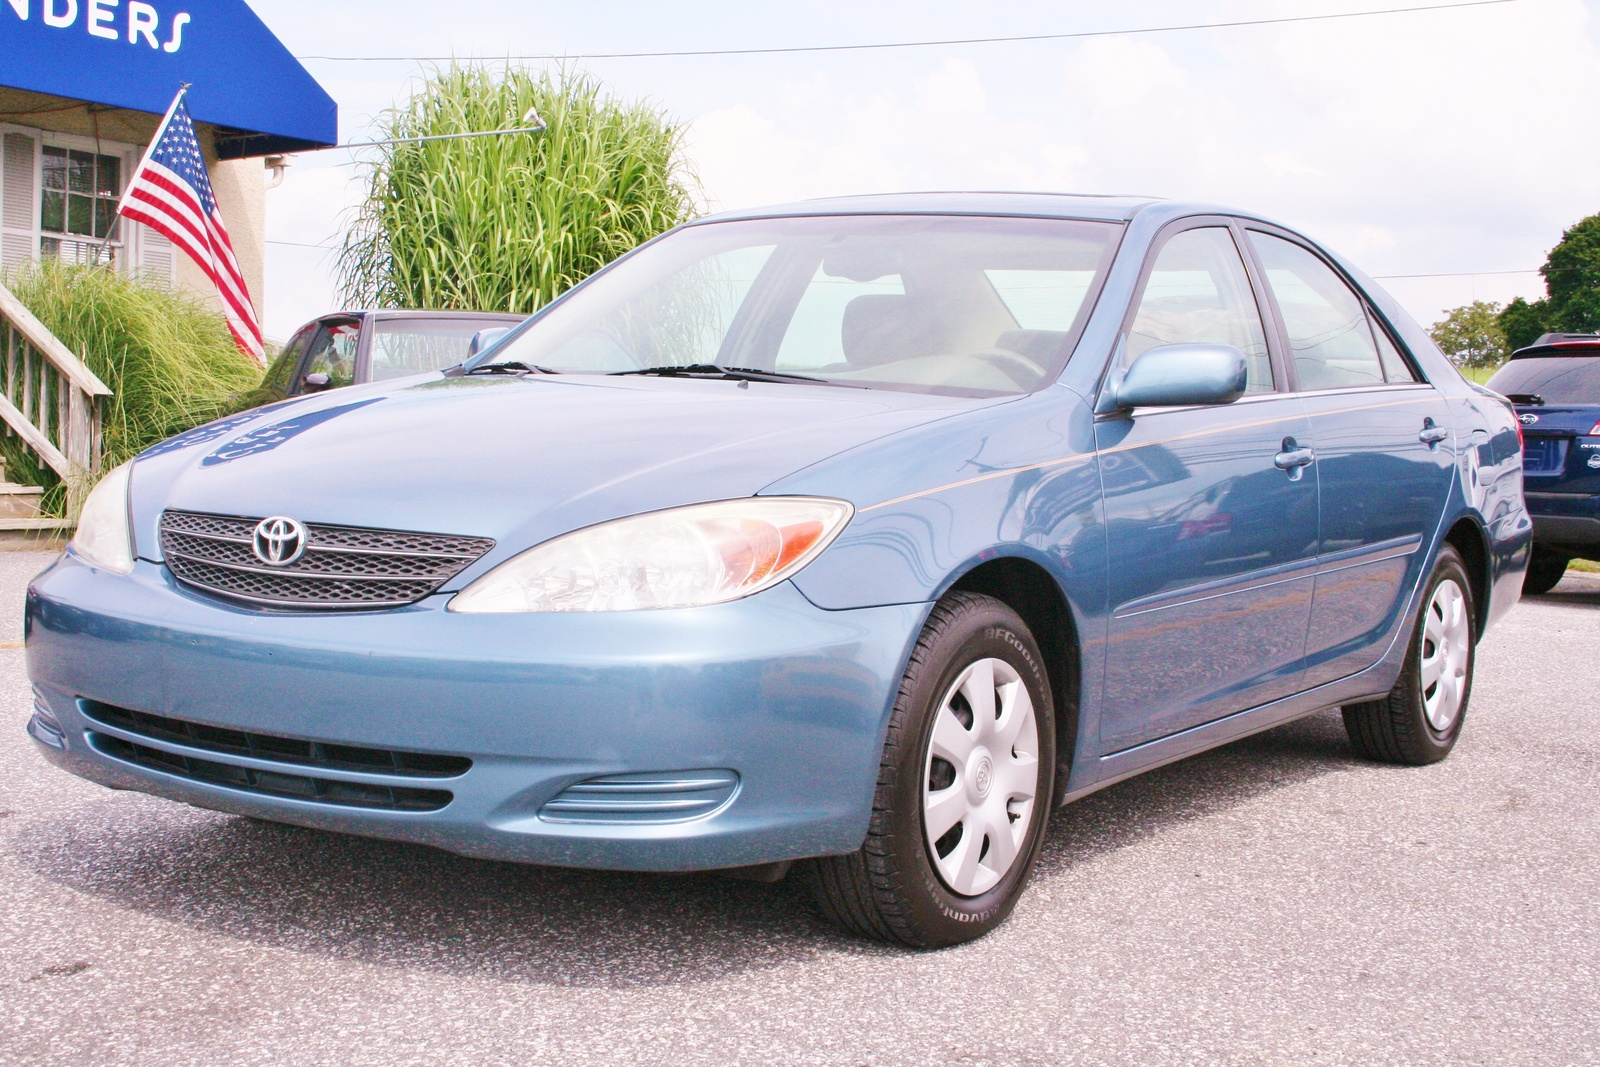 2004 Toyota Camry Pictures Cargurus